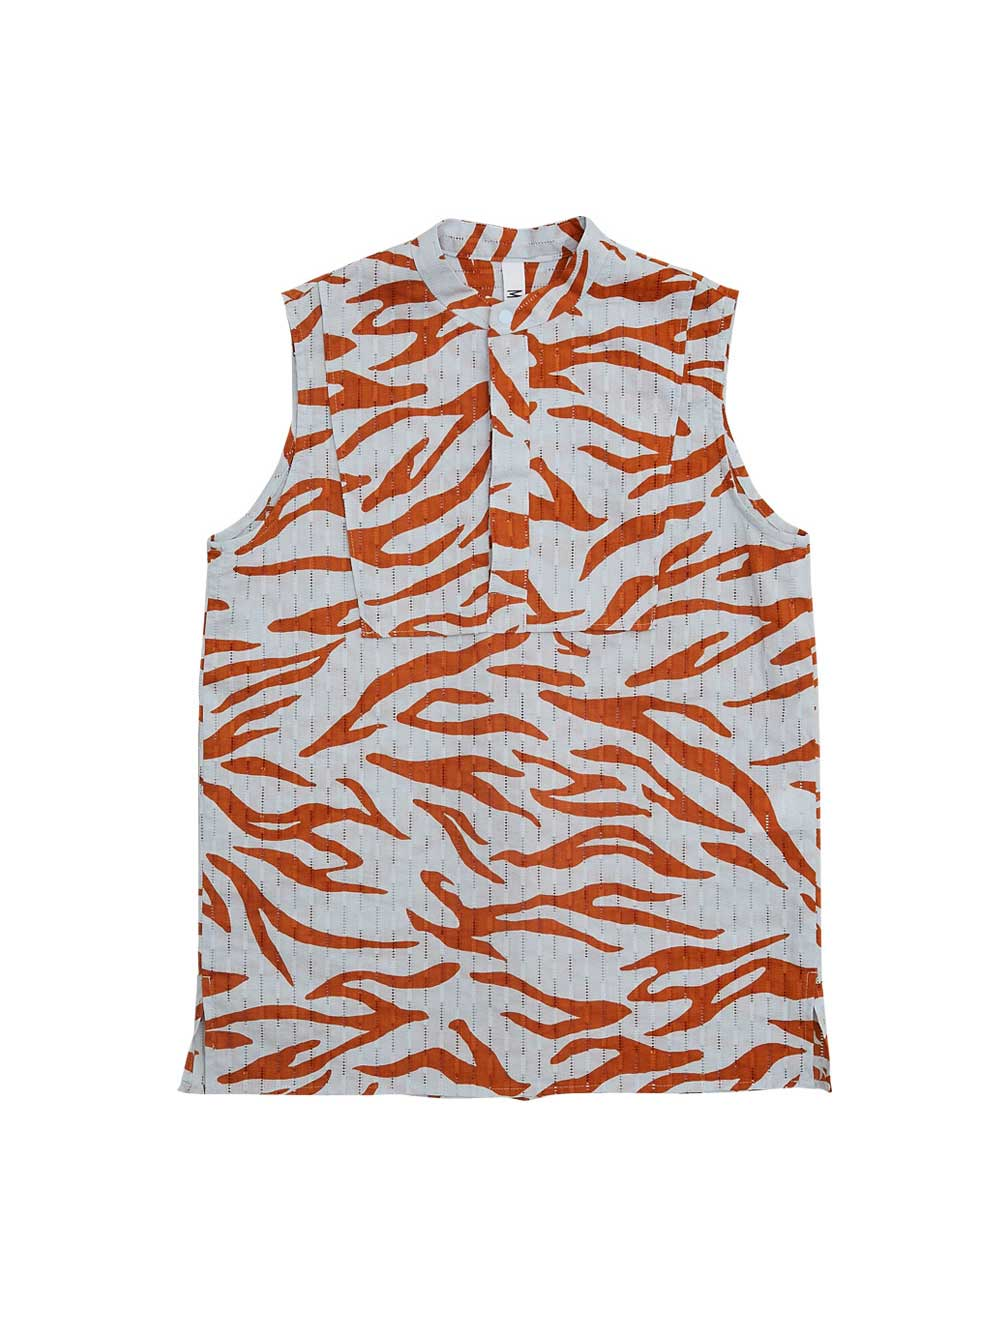 Orange Sleeveless Camo Shirt